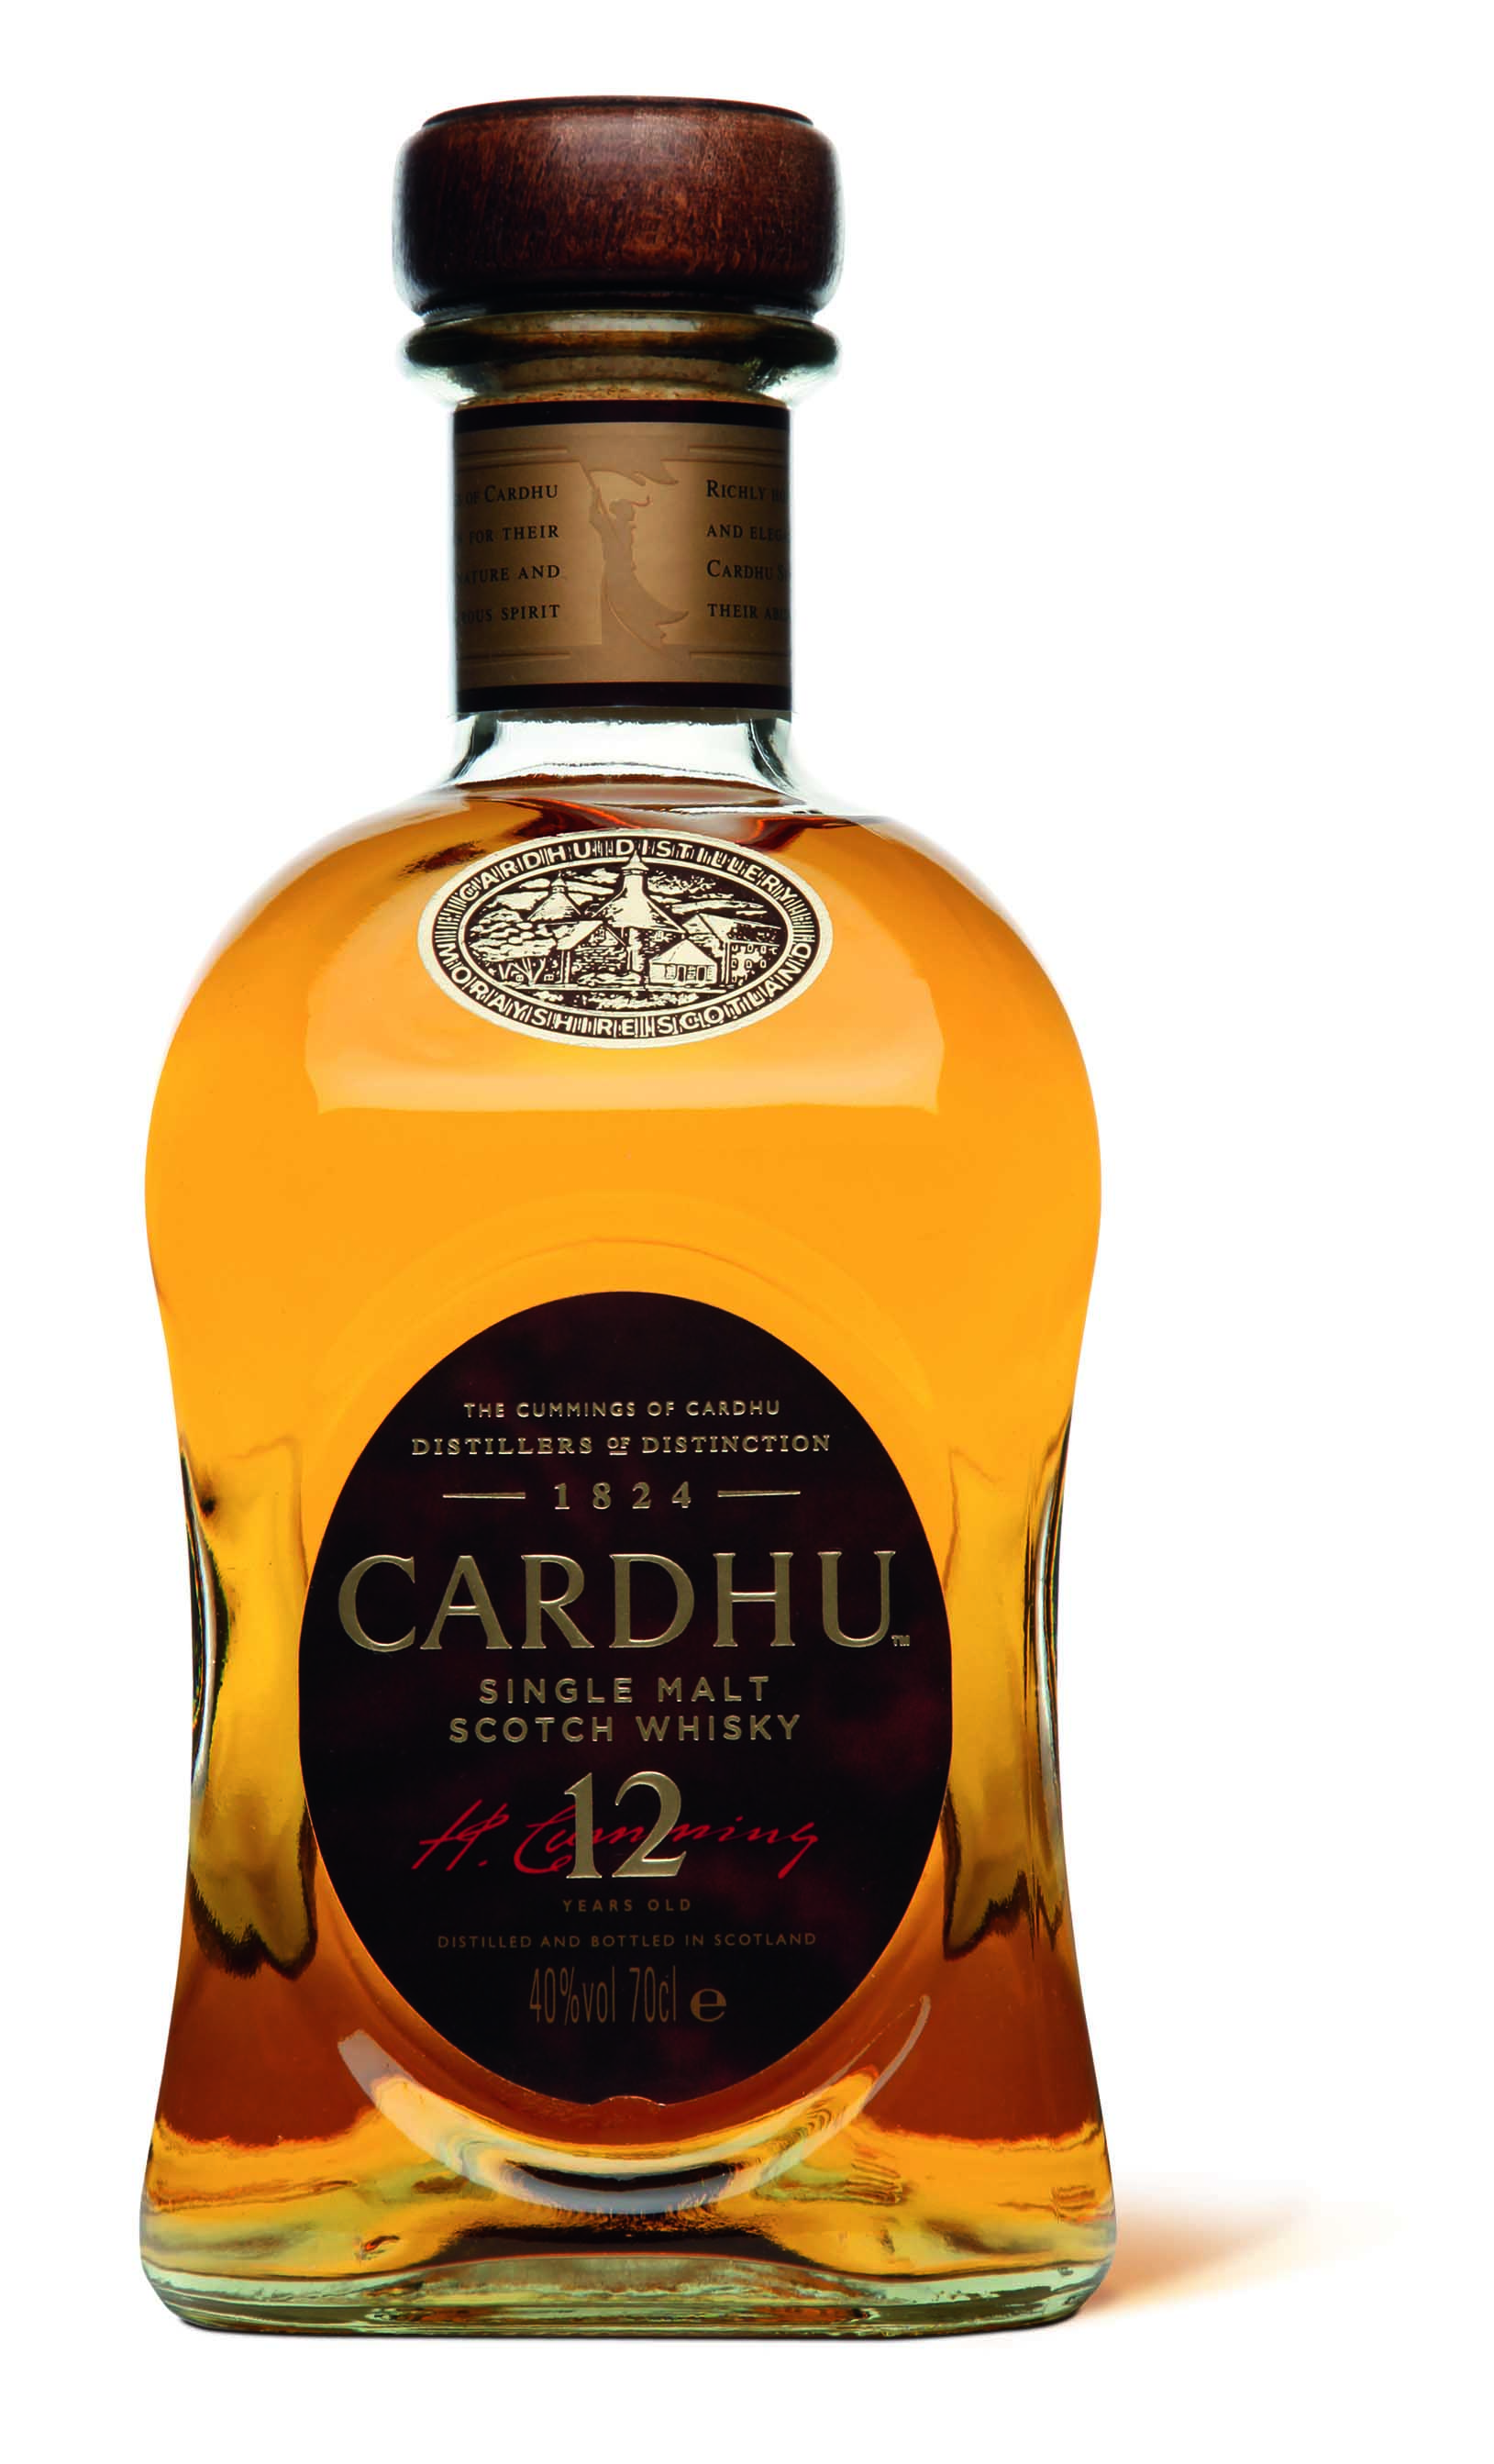 Cardhu New Bottle